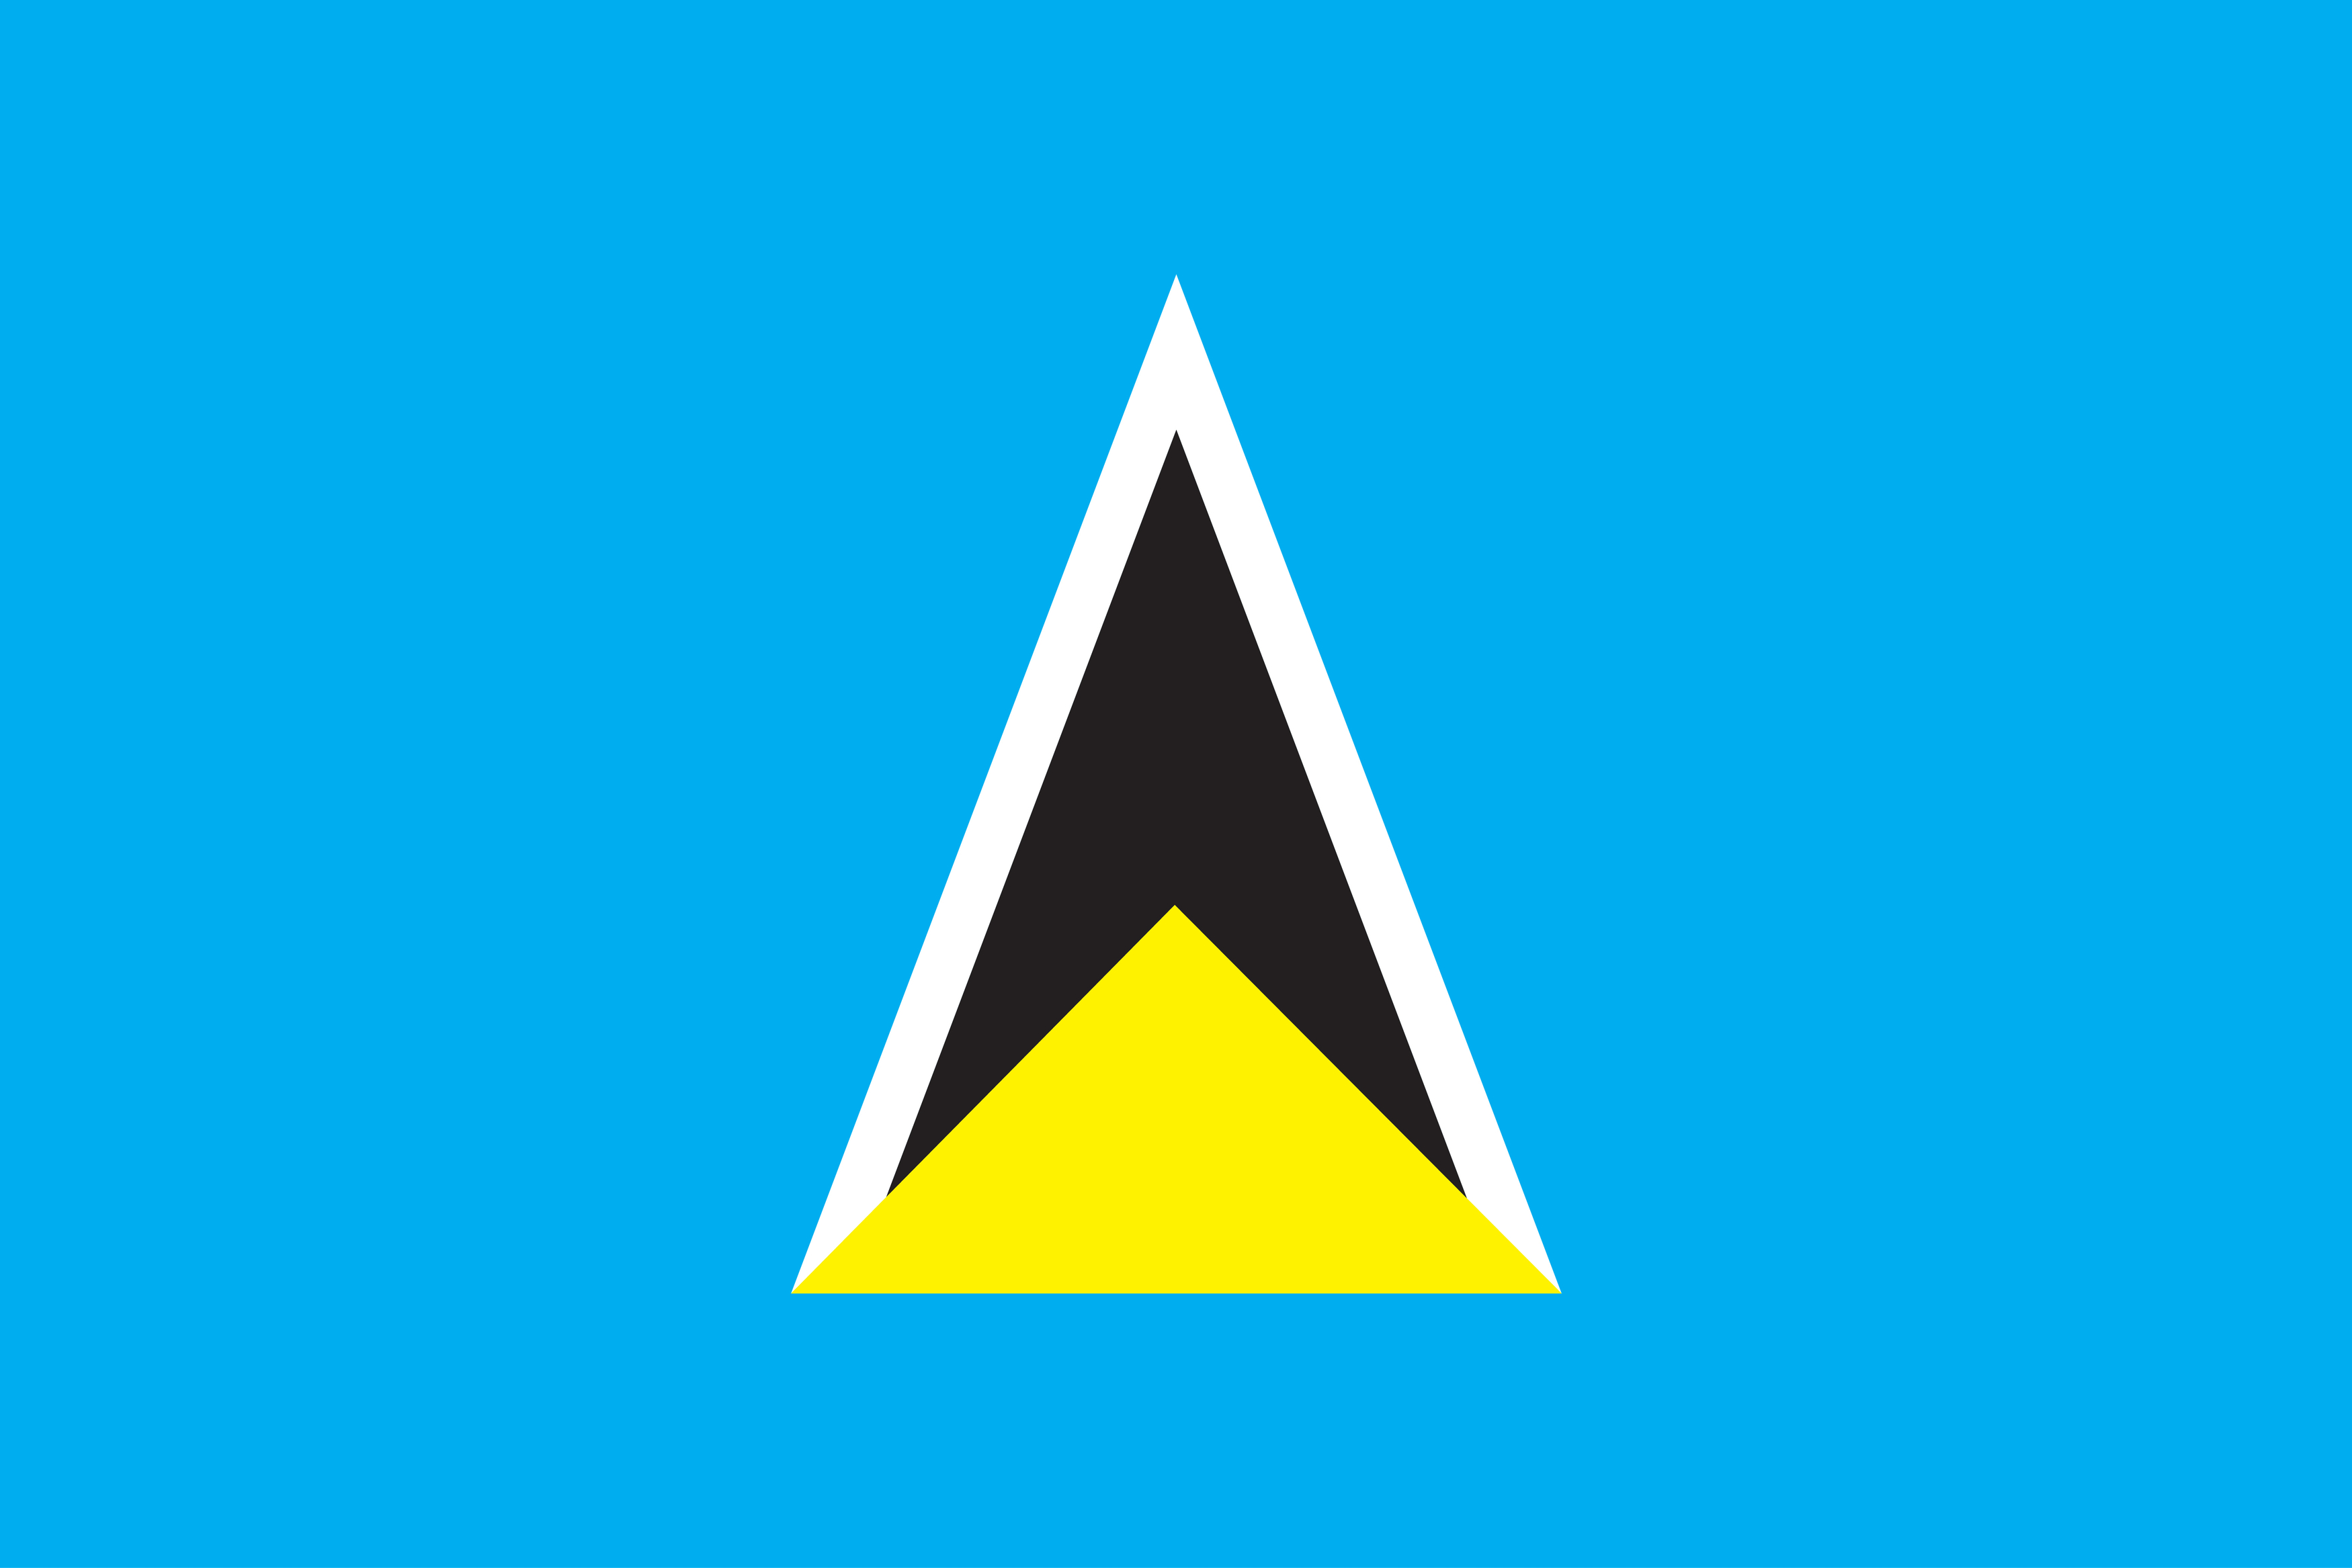 The two triangles on the flag represent the two volcanic cones of Saint Lucia.